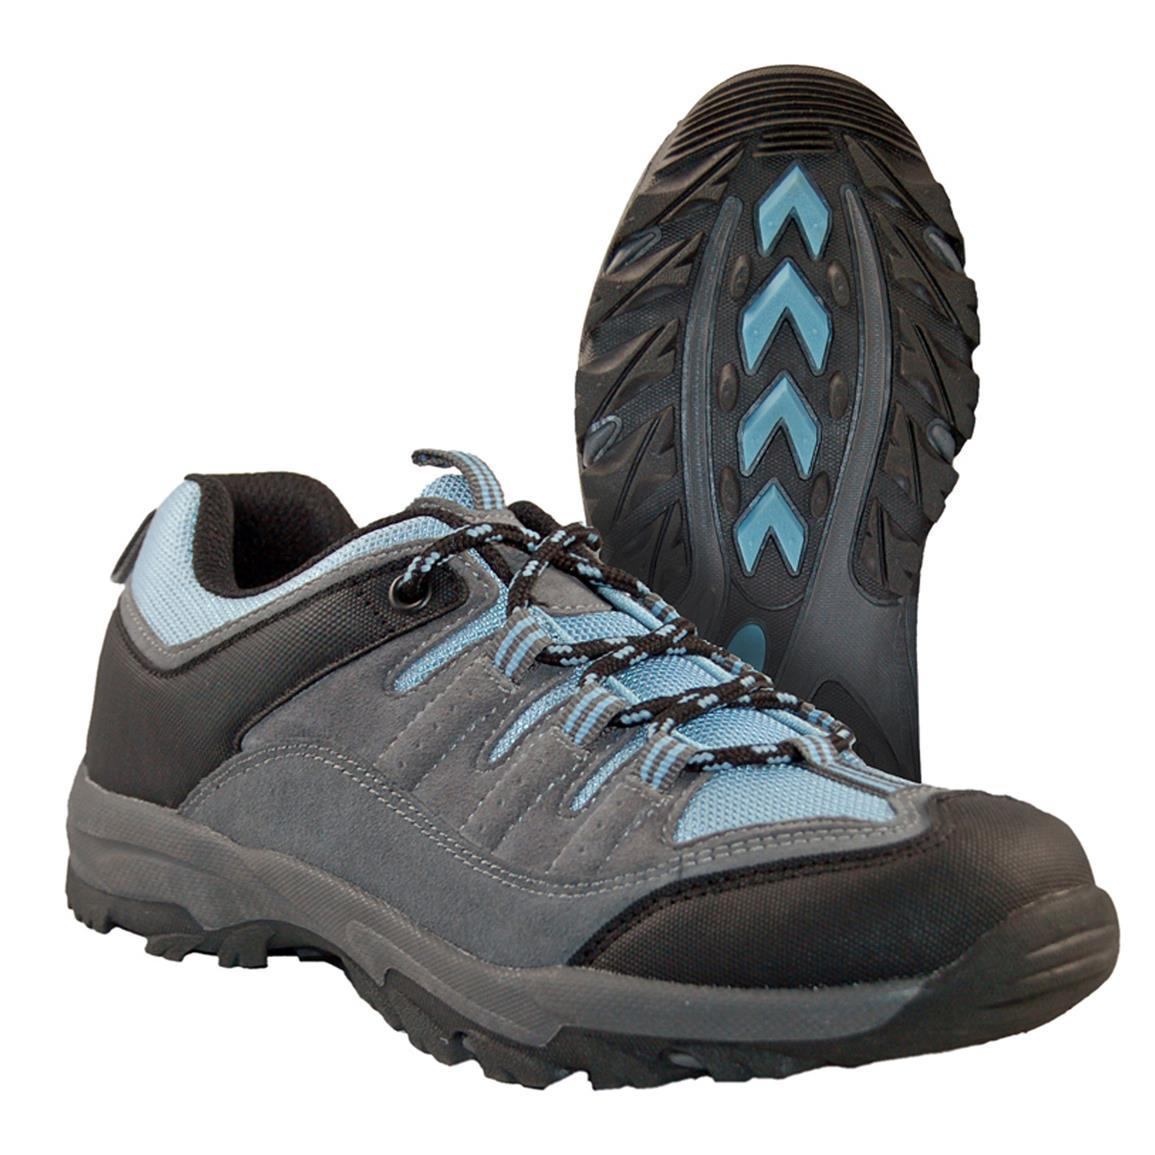 Itasca BRIDGEPORT Low Womens Grey Blue Lace up Hiking Boots Shoes by Itasca